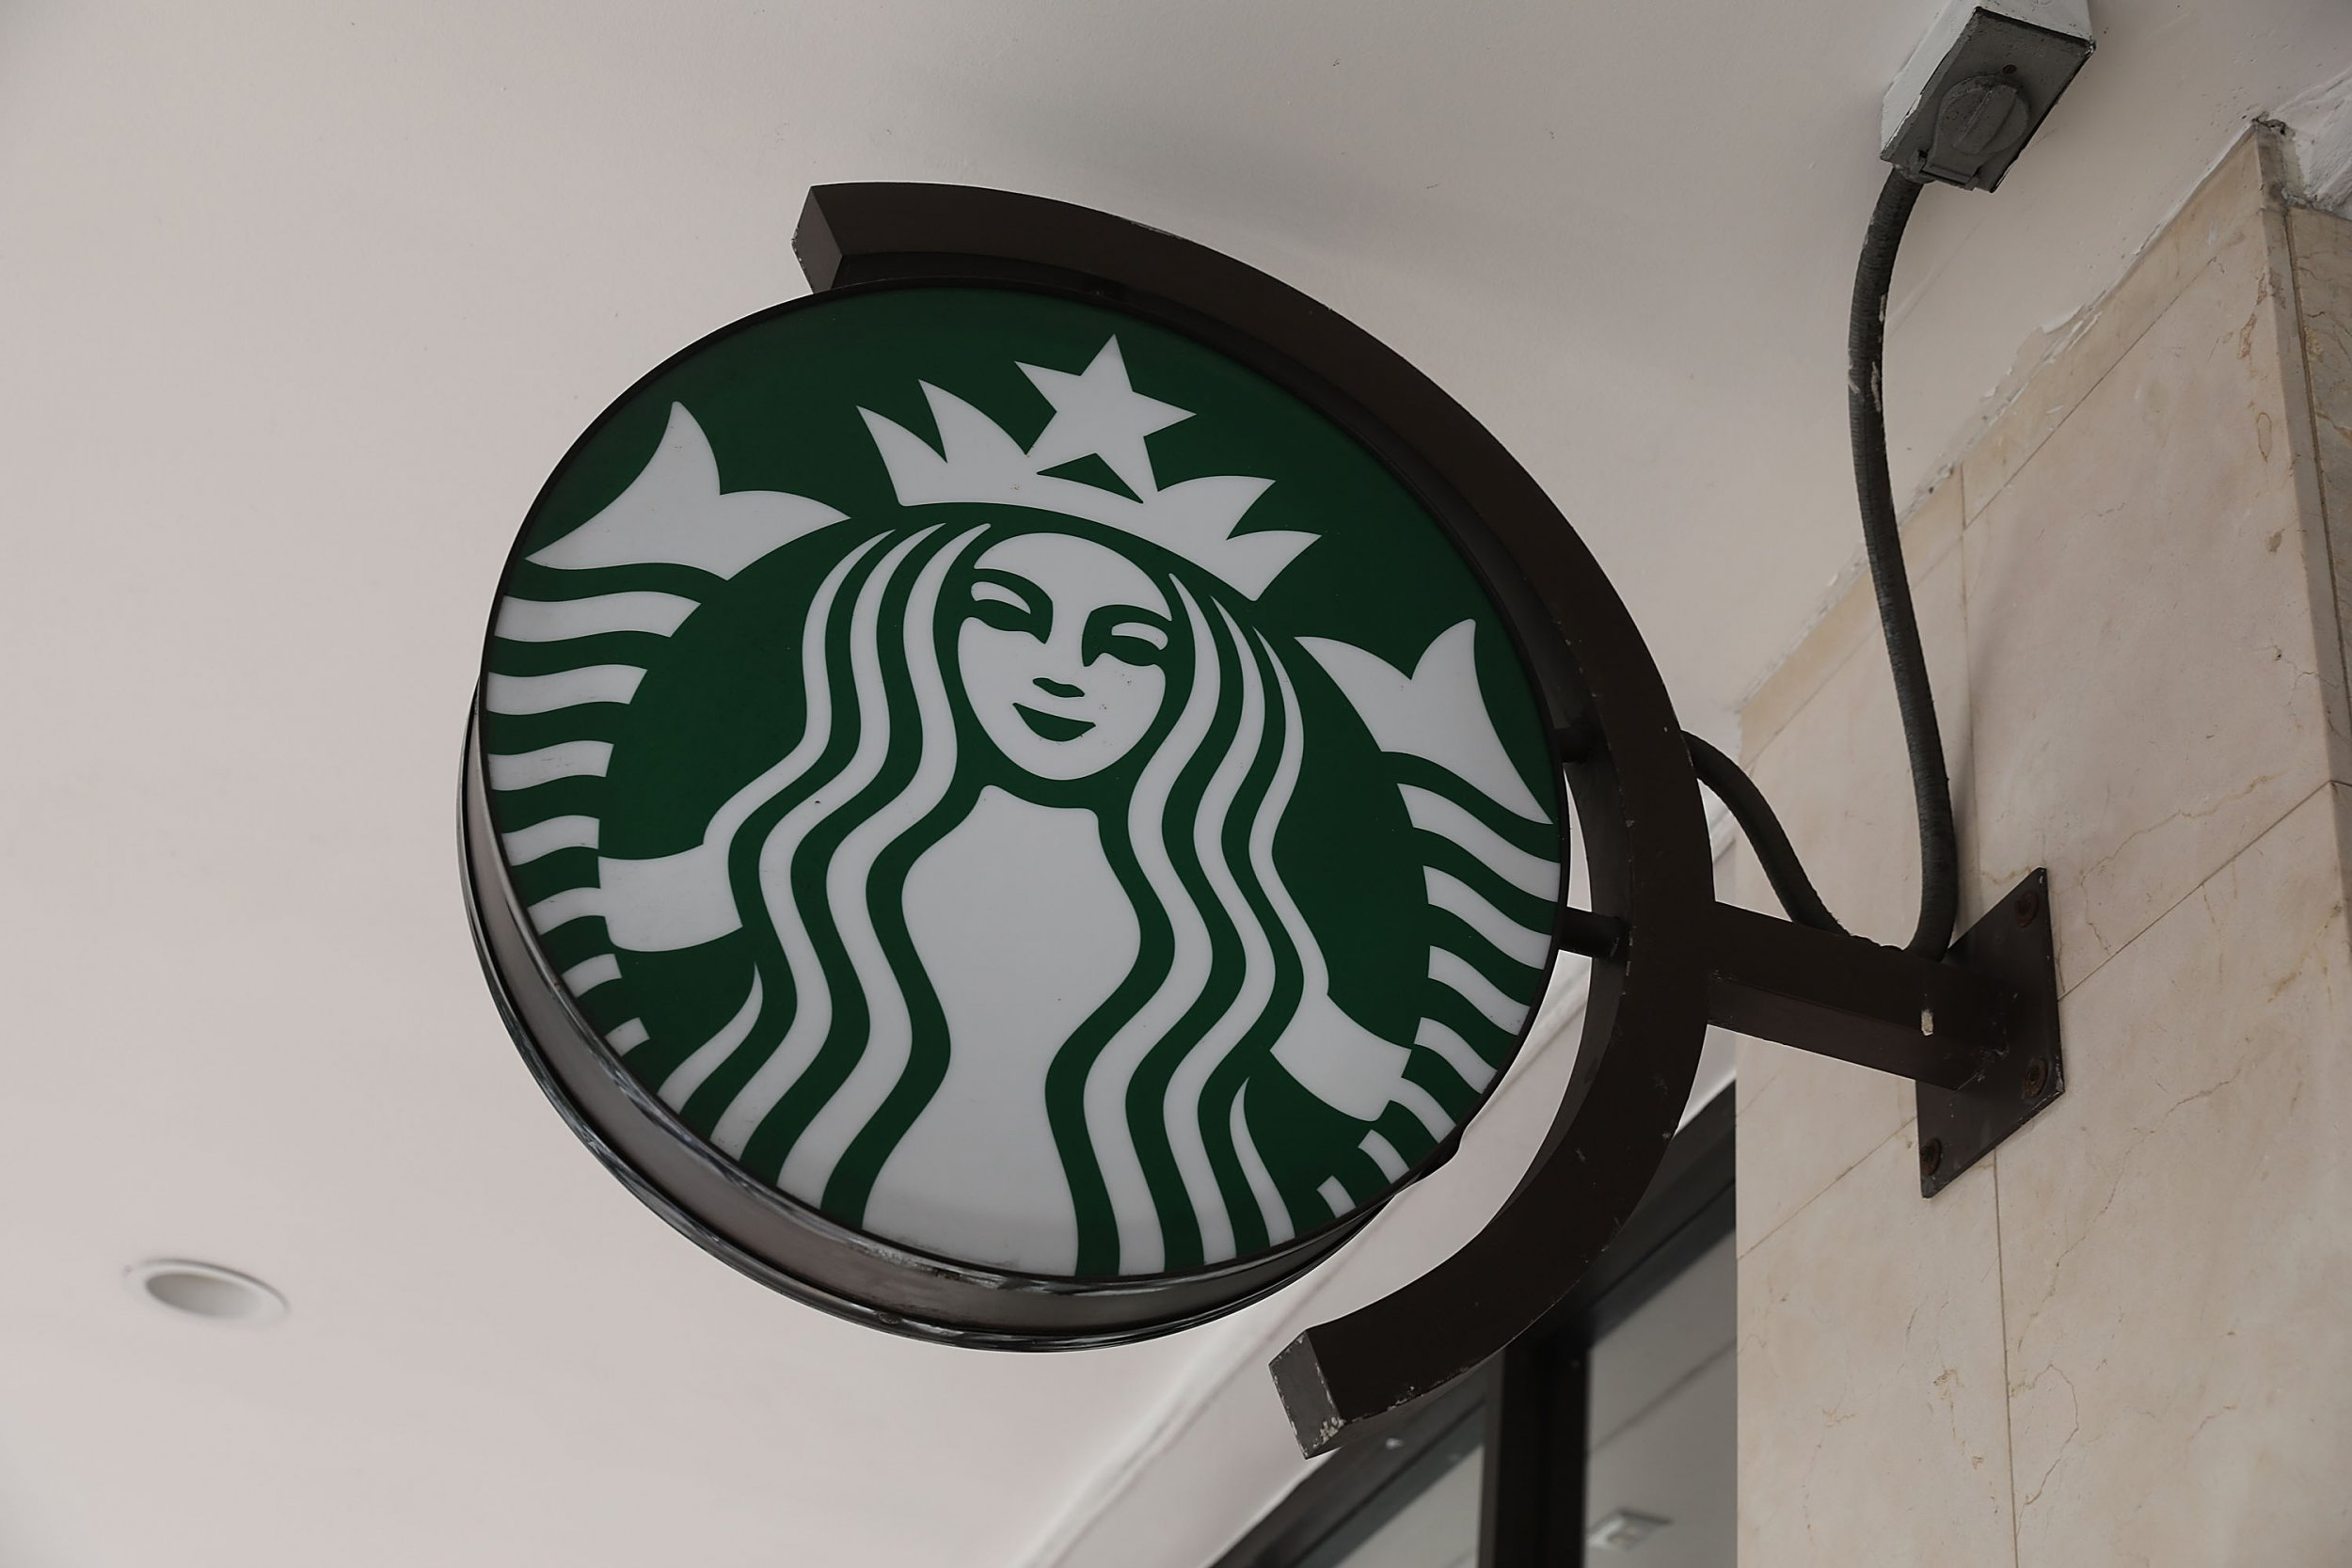 Starbucks Ceo Sales Are Down Because People Are Too Healthy To Buy